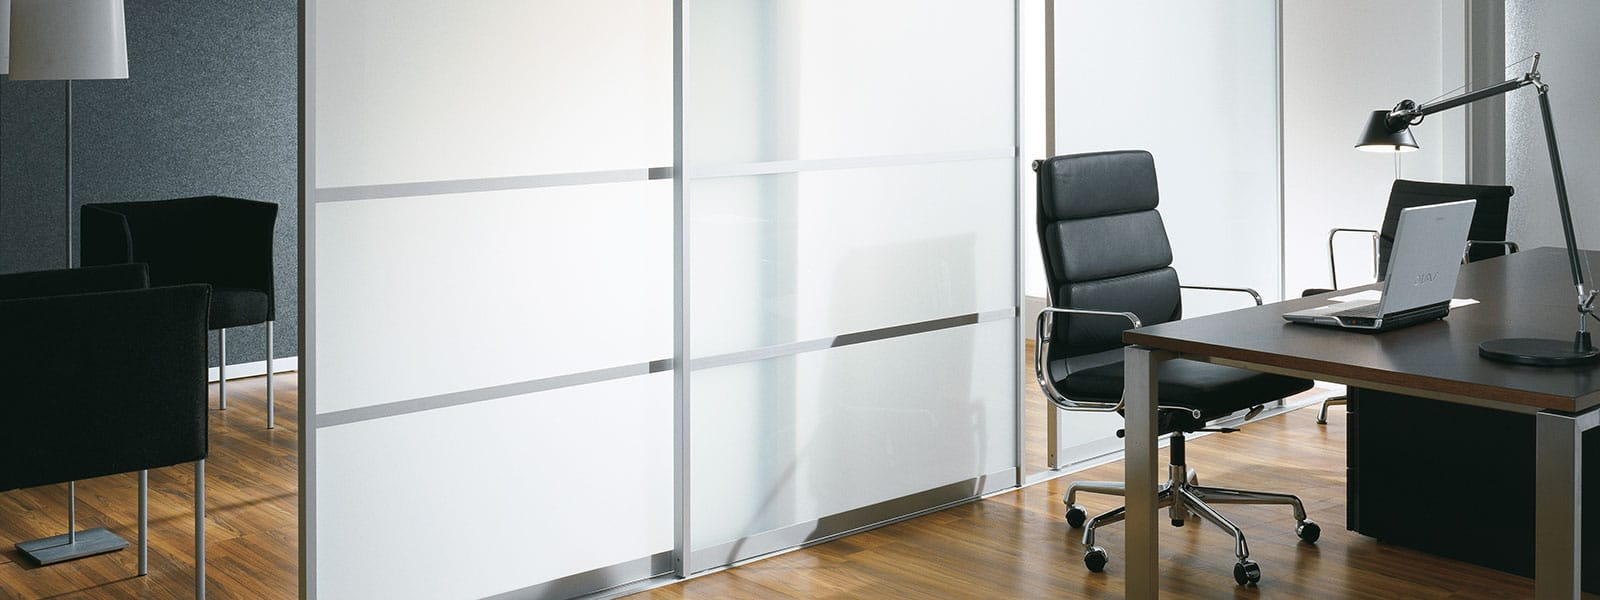 Raum Trenner Room Dividers For Perfect Privacy Protection: Sinus Sliding Doors